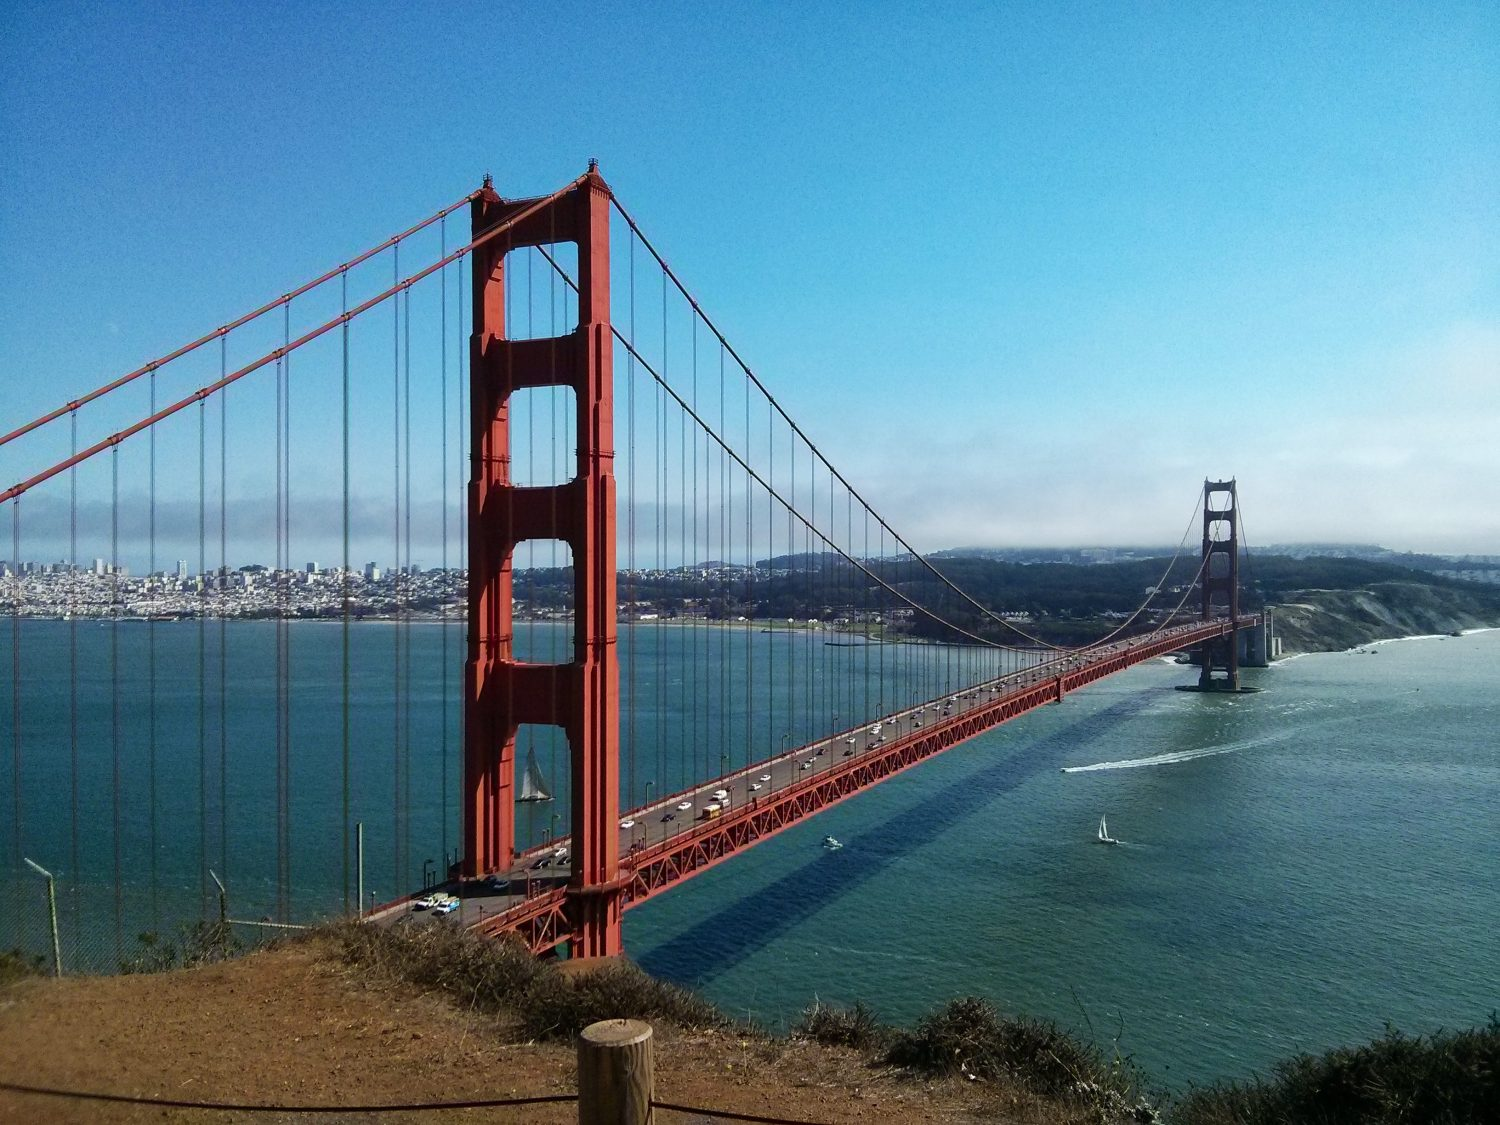 Nothing better than a road trip to San Francisco